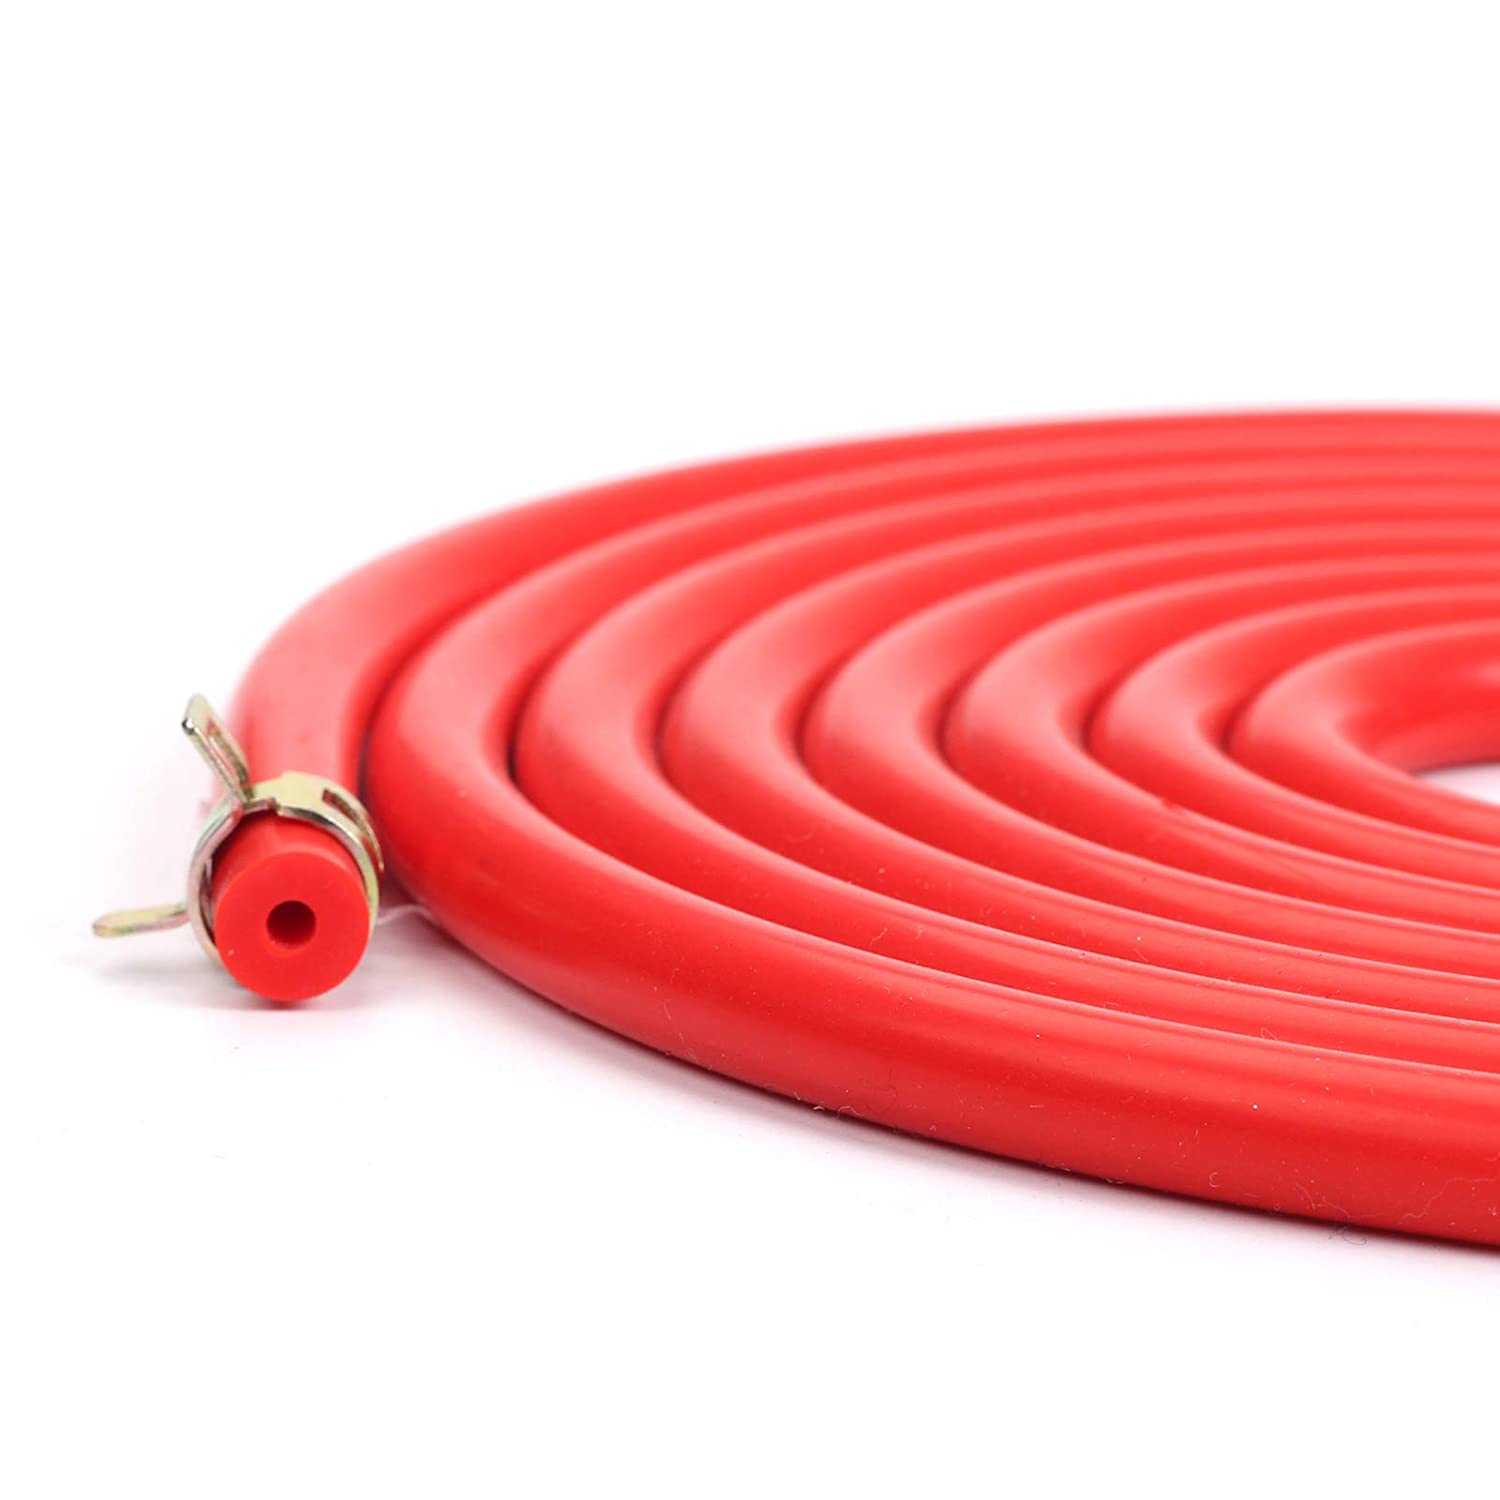 BLACKHORSE-RACING 10 Feet 3//16 High Performance Silicone Vacuum Hose 10 Pcs 10mm Spring Clips Fuel Hose Line Water Pipe Clamps Fasteners